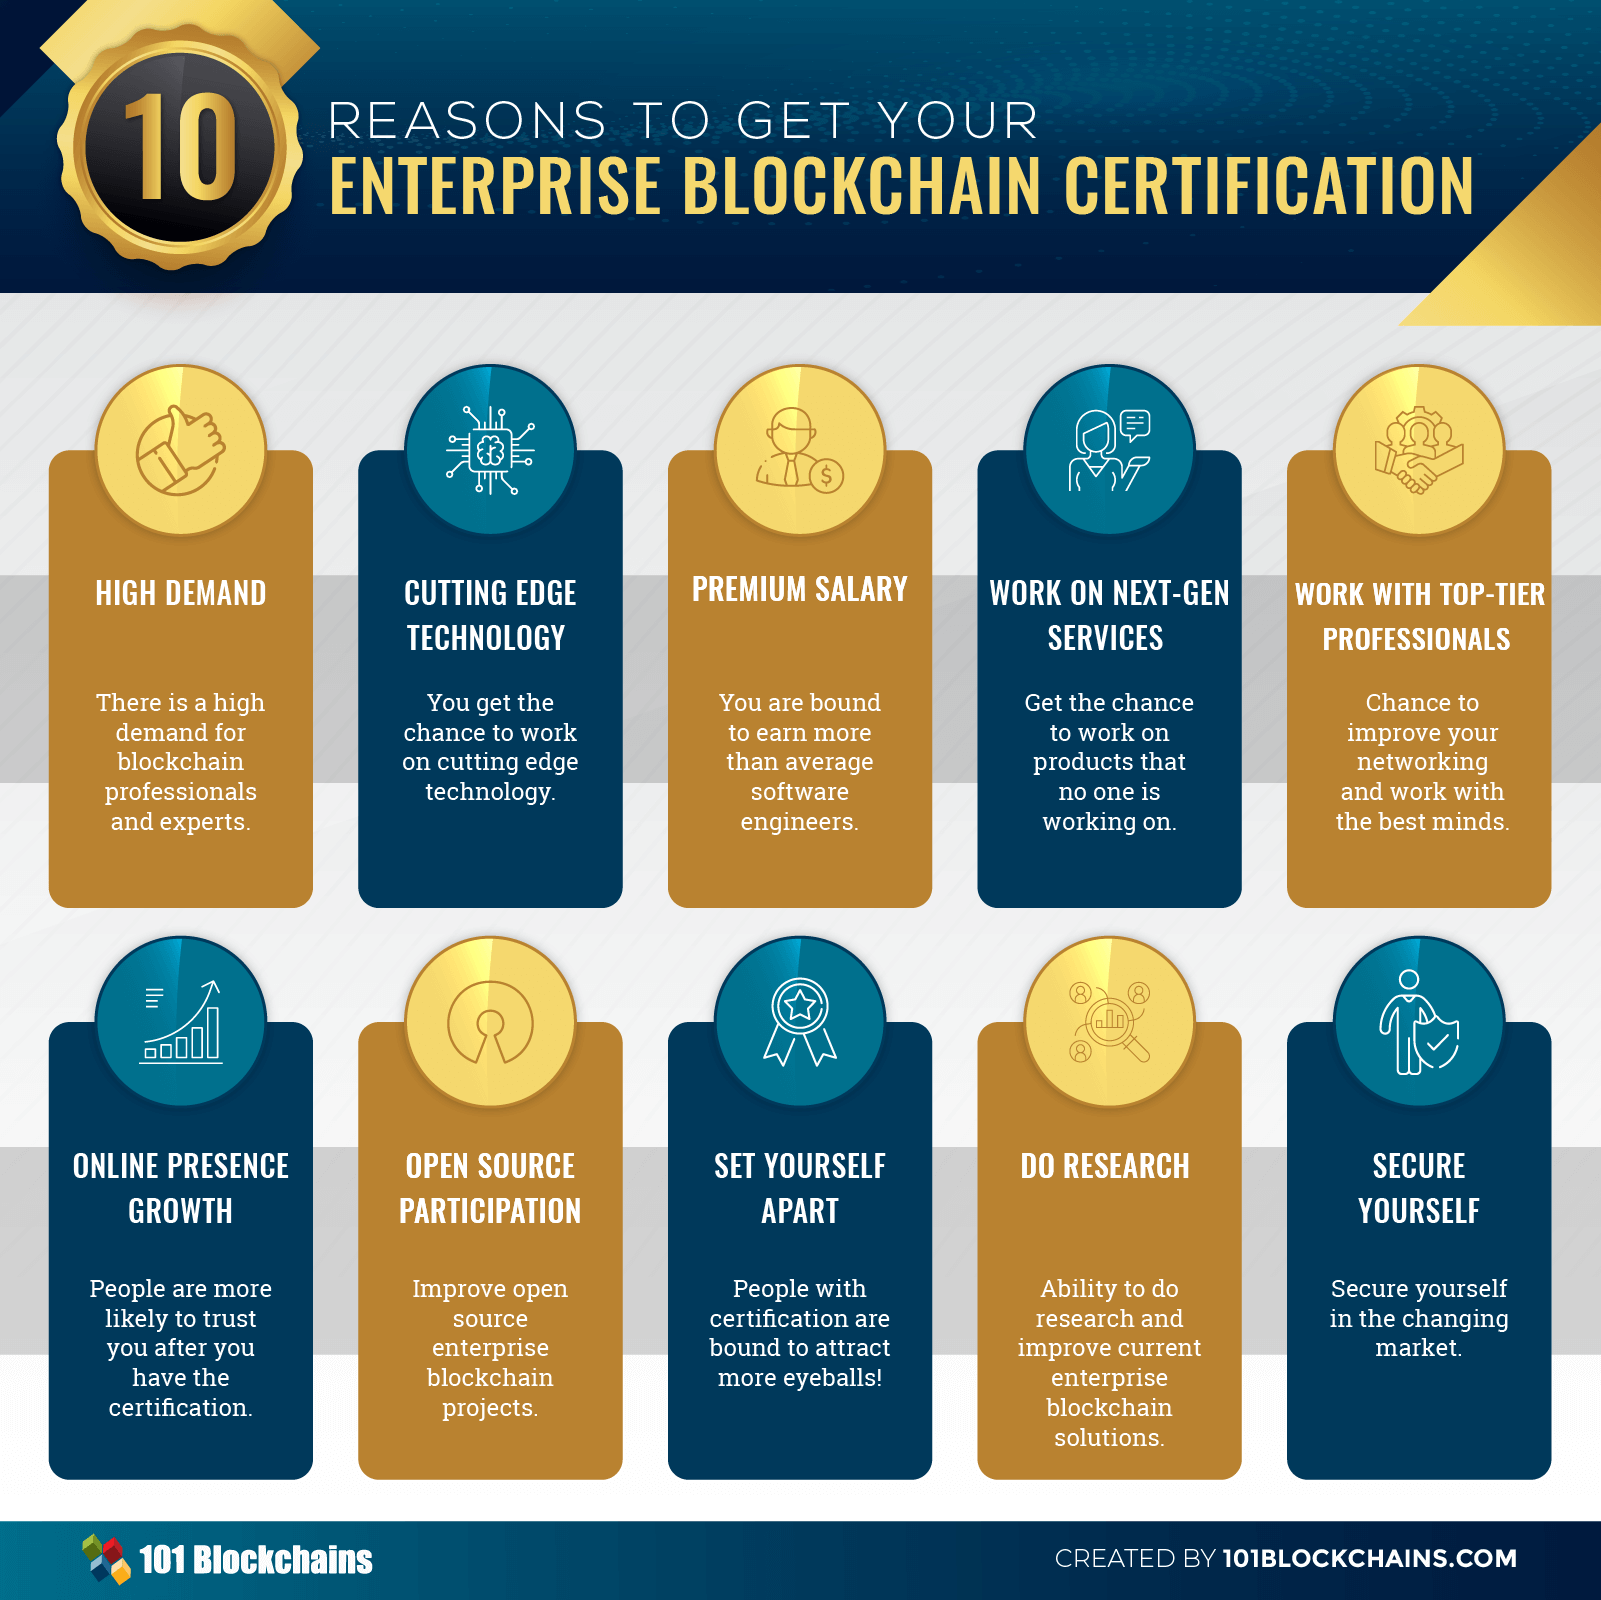 10 Reasons To Get Your Enterprise Blockchain Certification